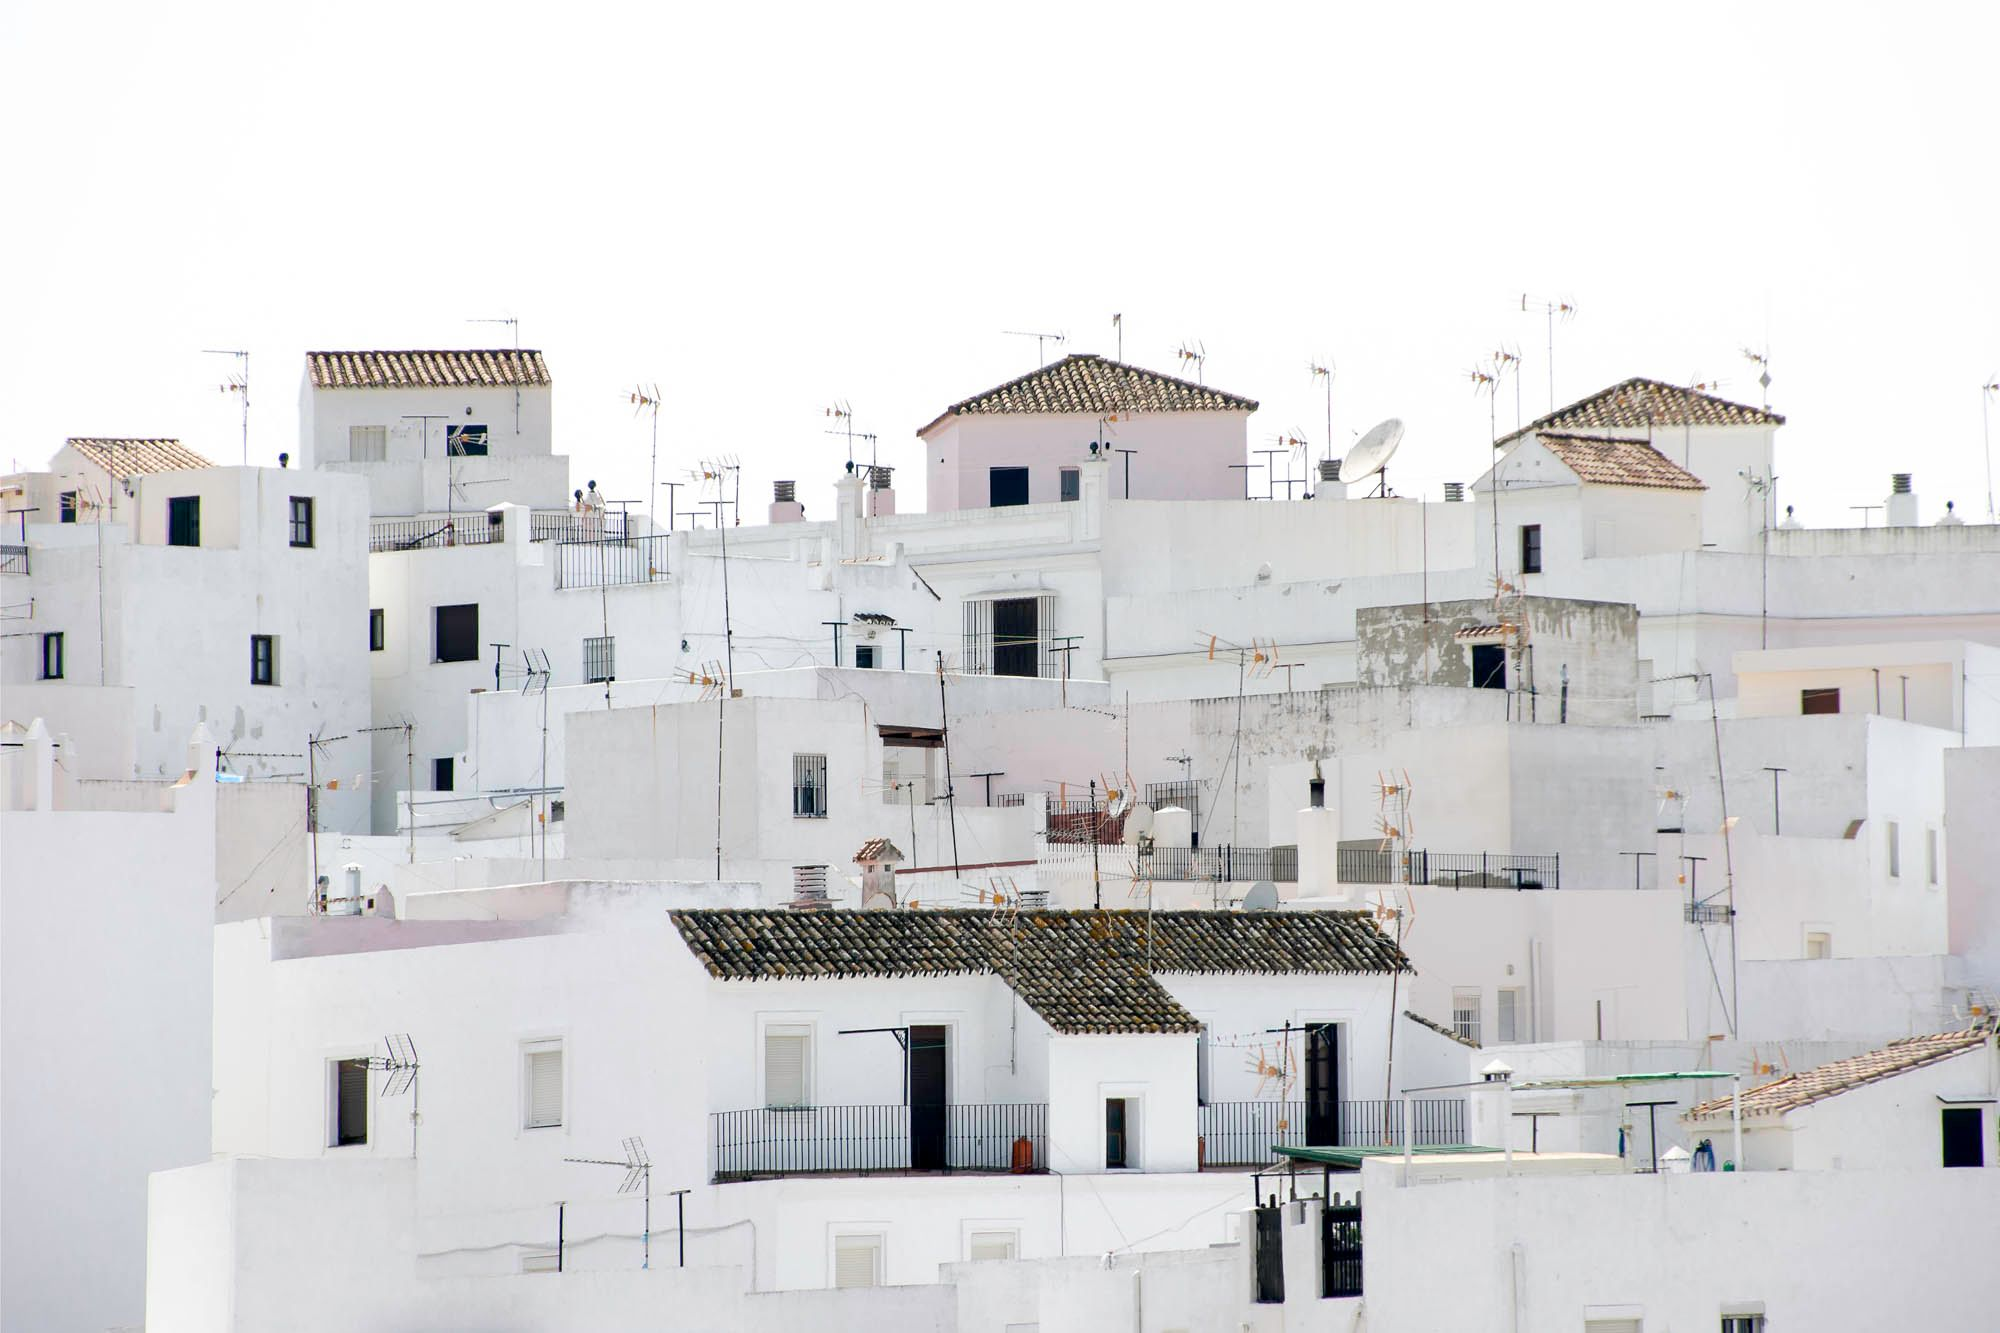 4-We Live here-Vejer, Spain.jpg